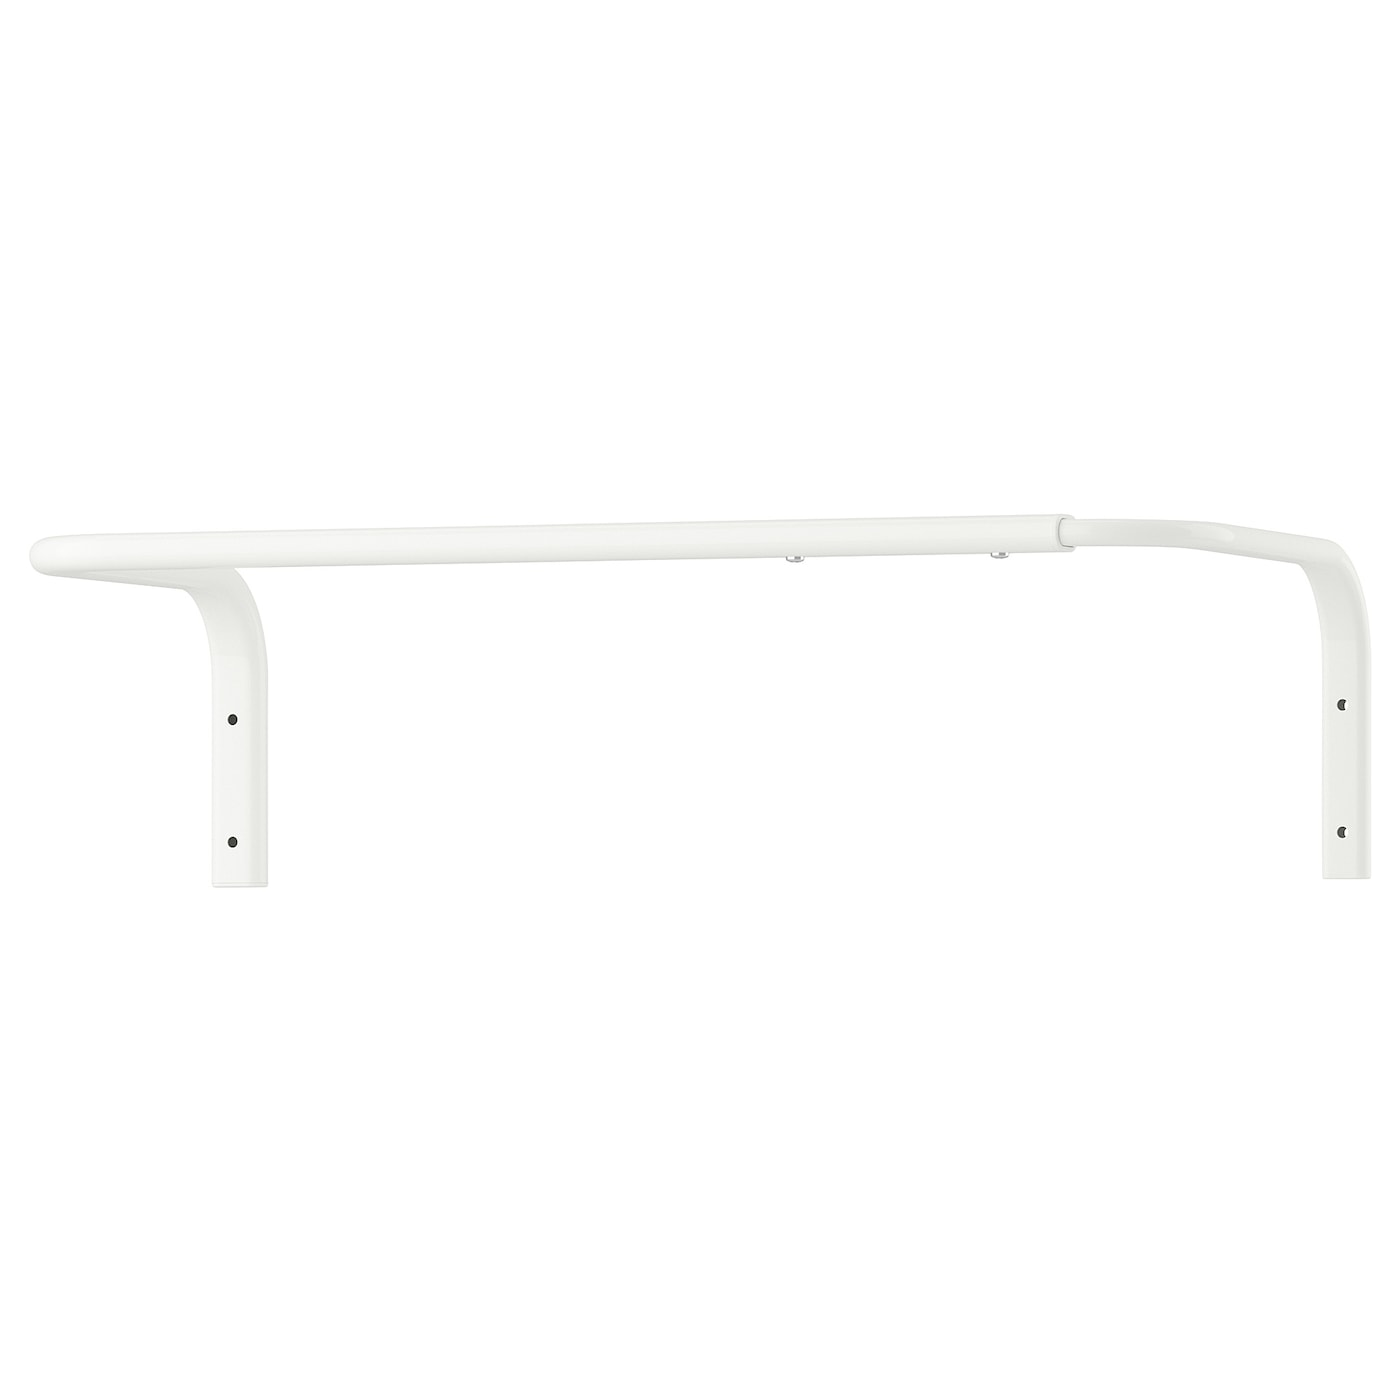 IKEA MULIG clothes bar The width can be adjusted to suit your needs.